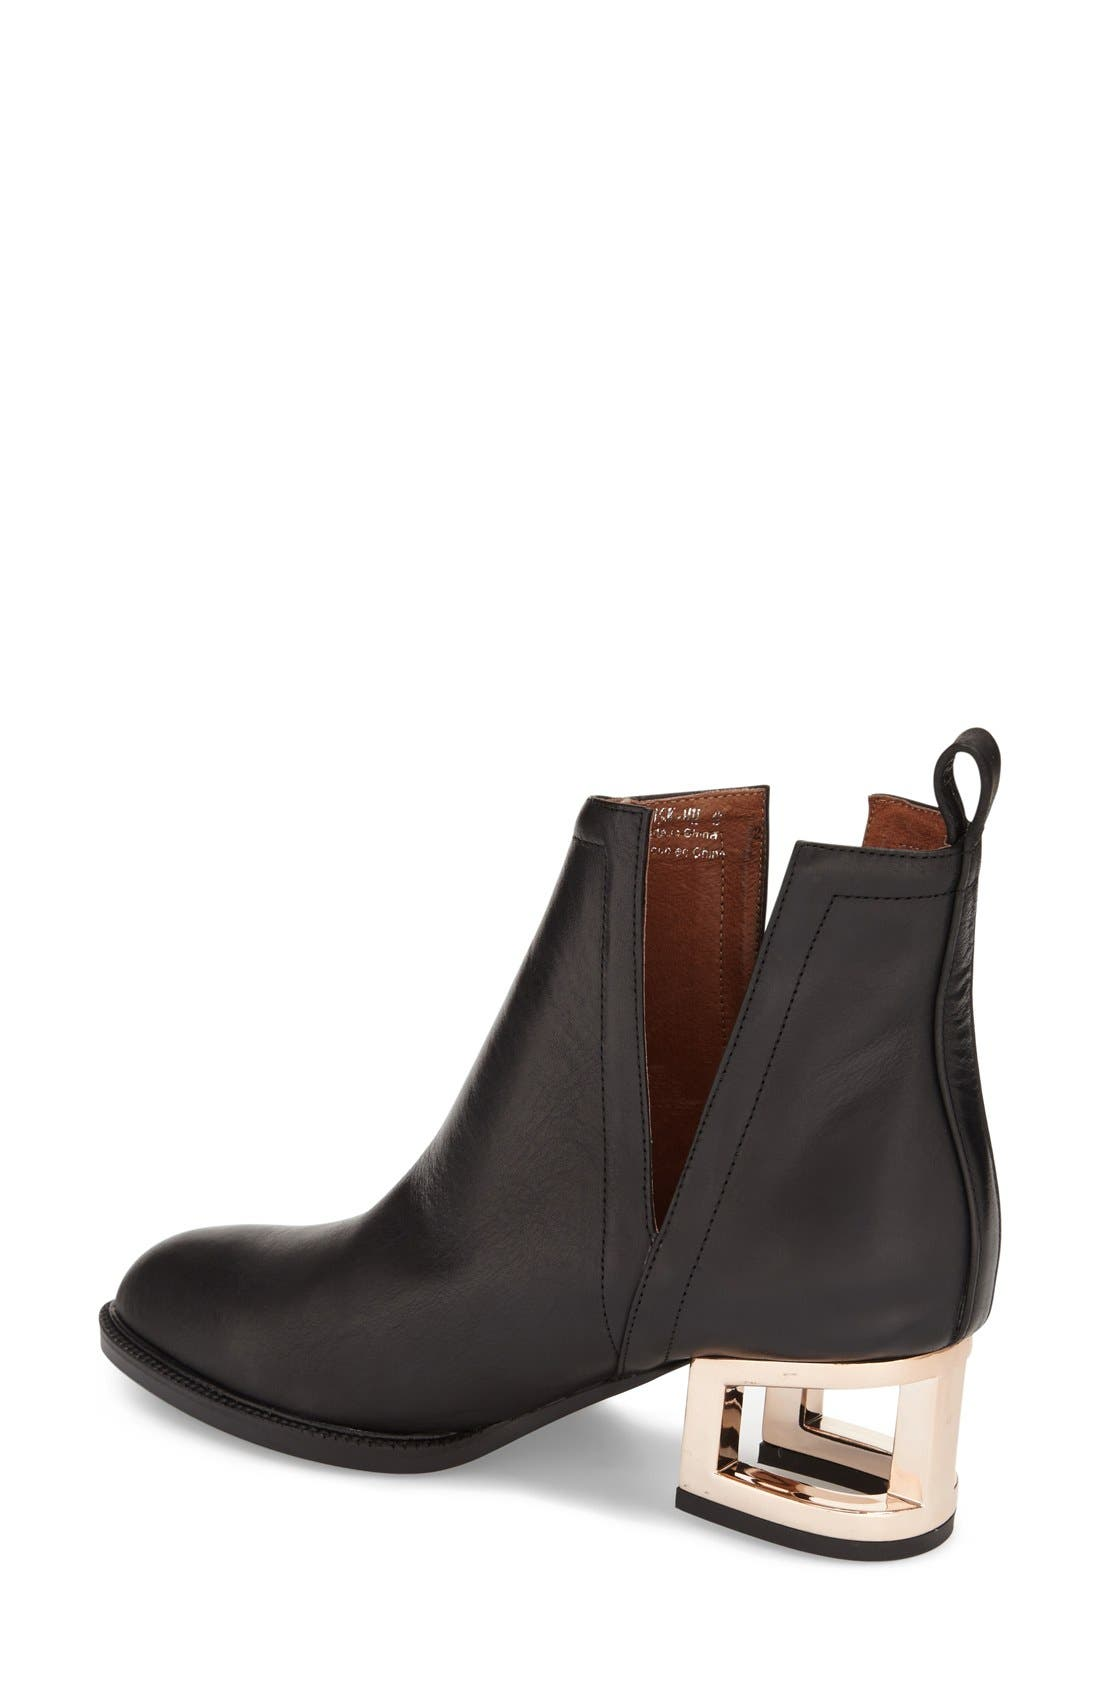 Alternate Image 2  - Jeffrey Campbell 'Musk' Cage Heel Ankle Boot (Women)